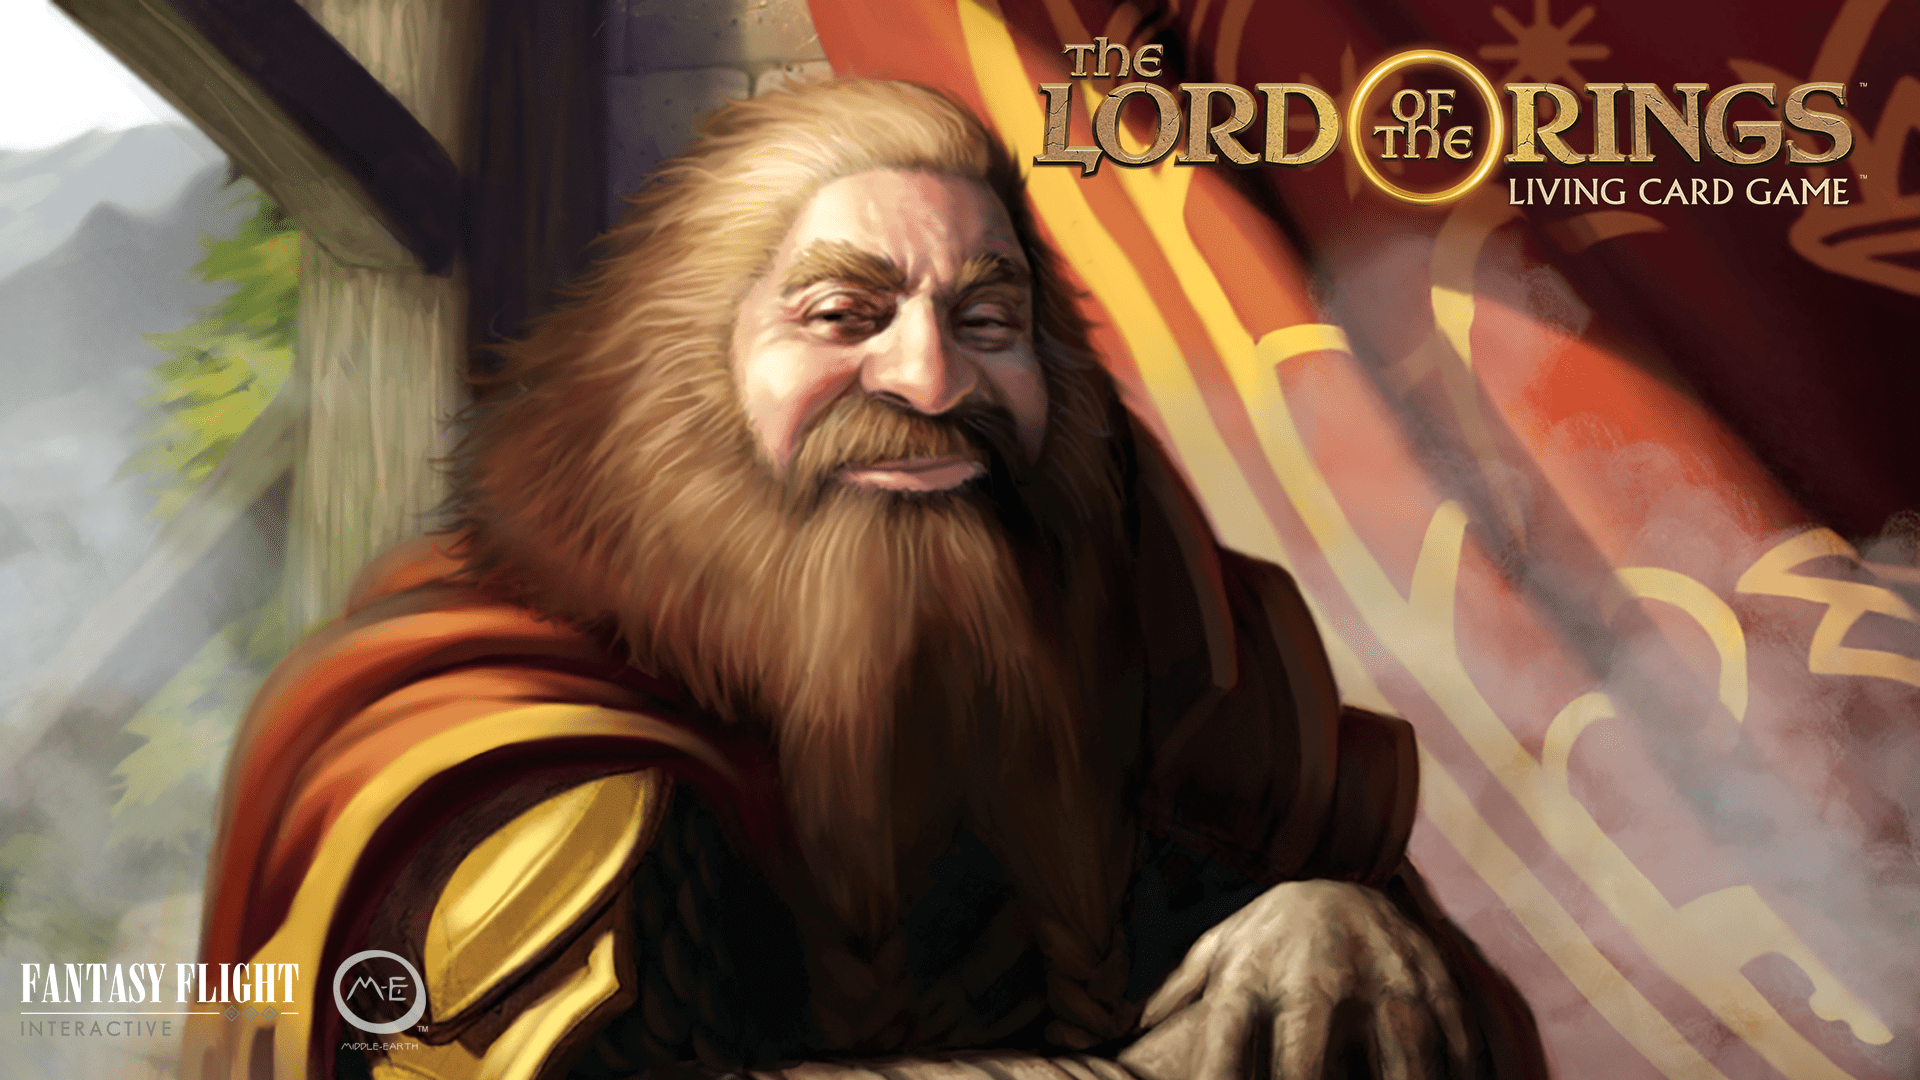 The Lord of the Rings  Living Card Game on Steam Weekly Wrap Up  September 14  2018